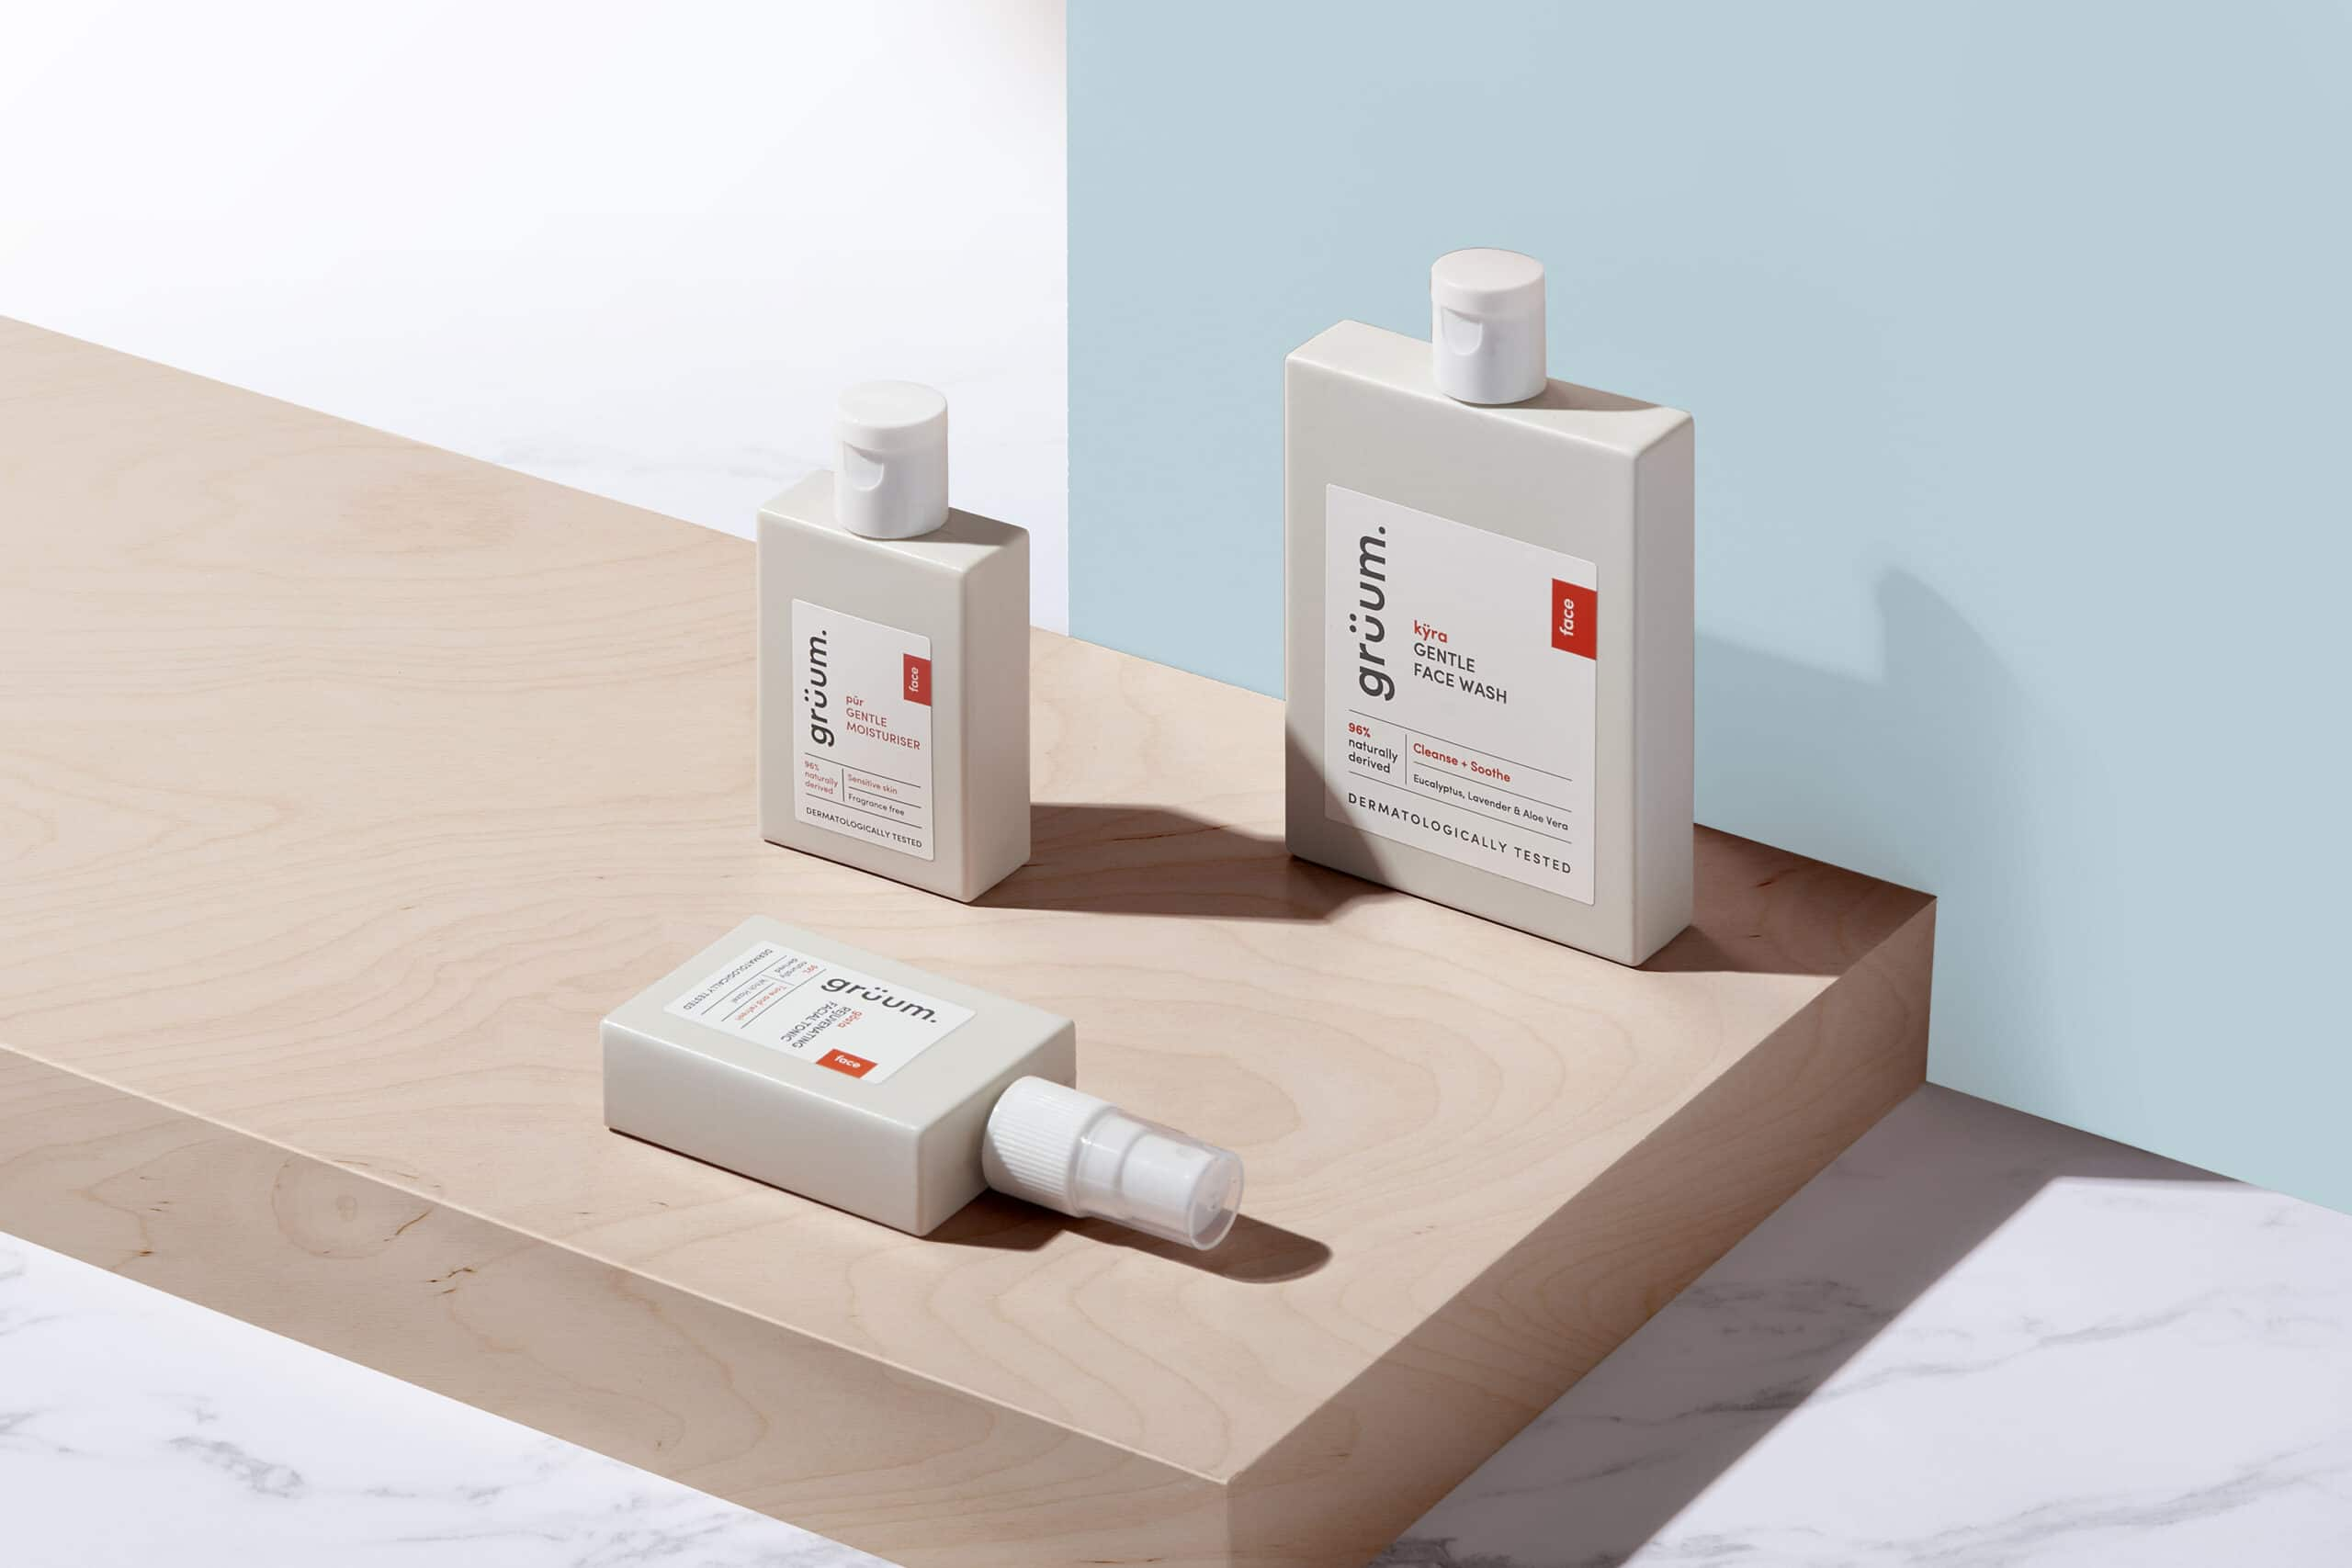 Gruum skincar trio product image with kyra face wash, pur gentle moisturiser and gosta facial tonic